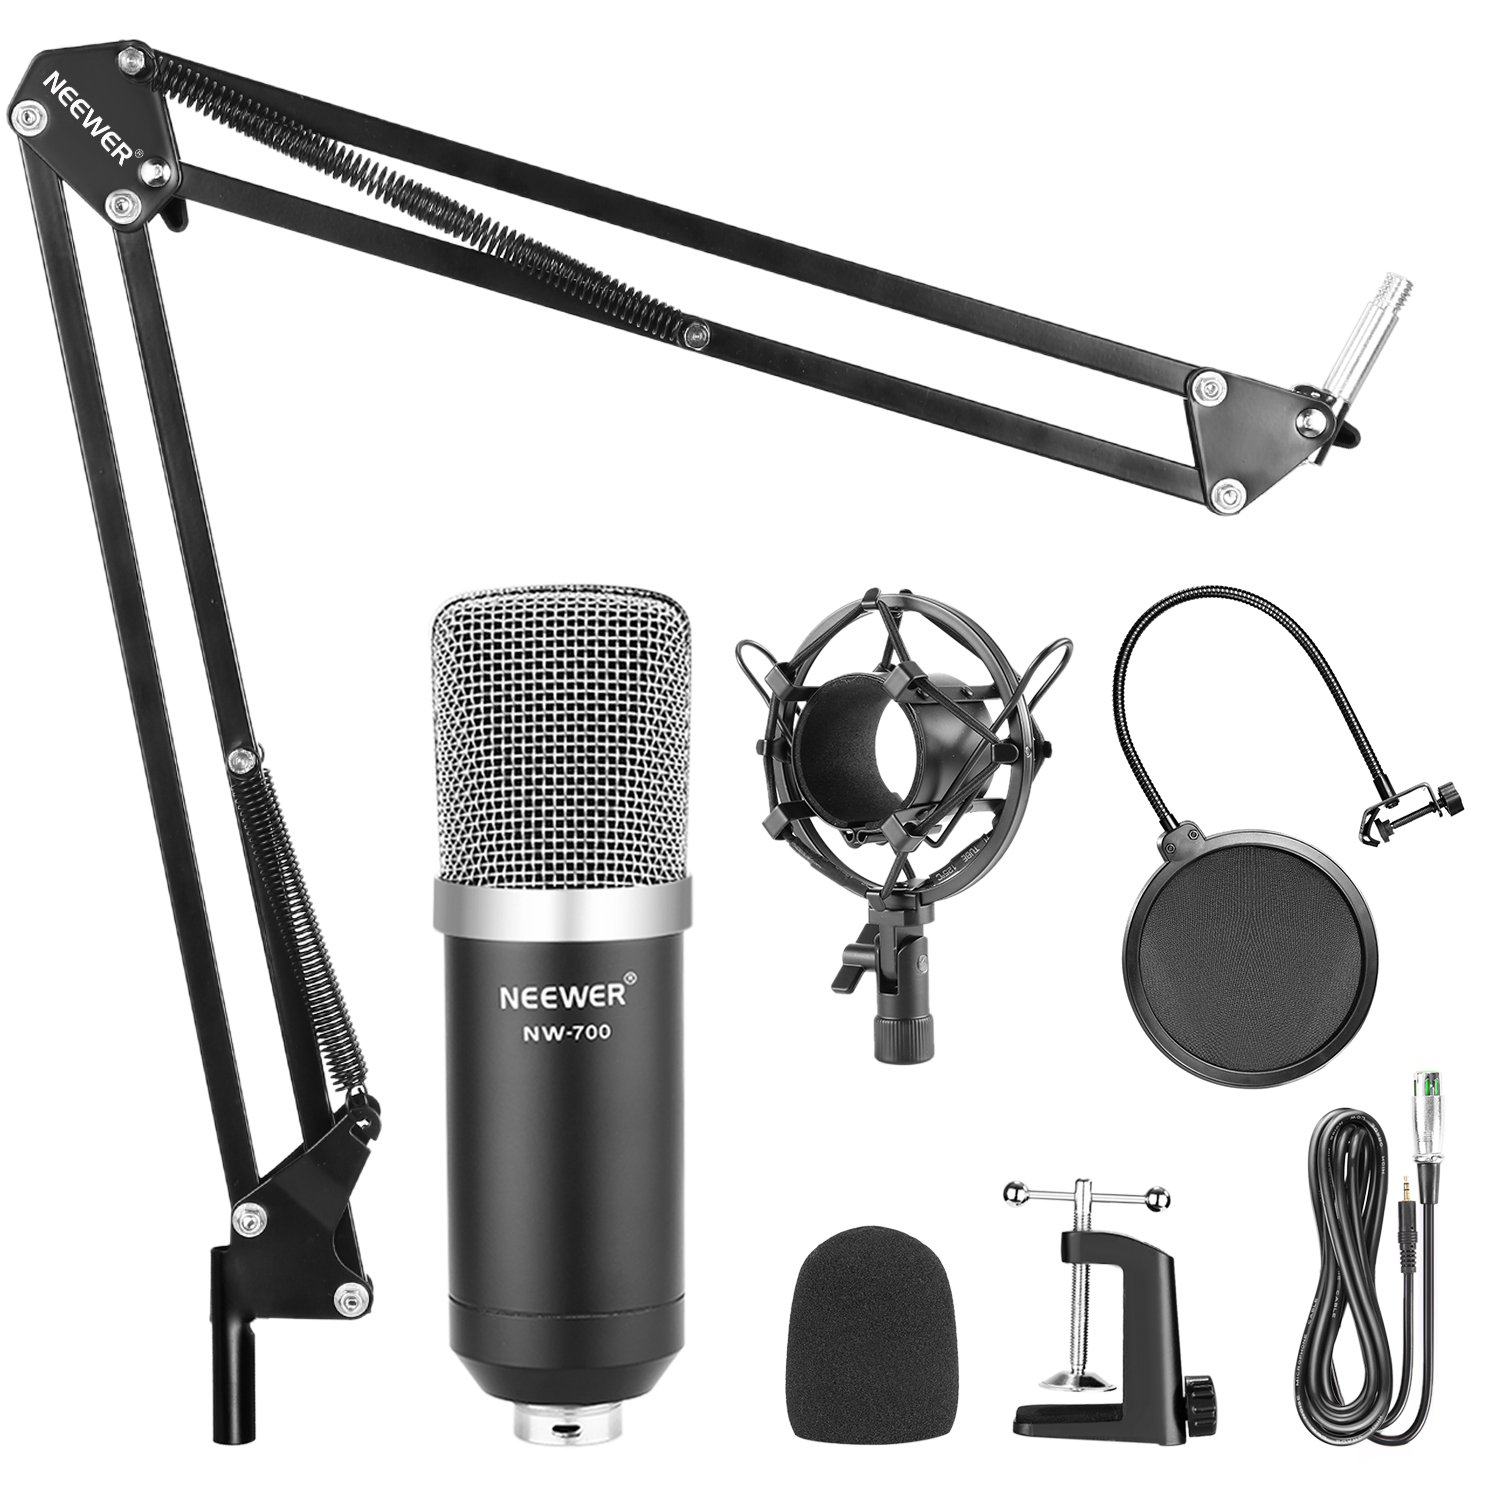 Neewer NW-700 Professional Studio Broadcasting Recording Condenser Microphone & NW-35 Adjustable Recording Microphone Suspension Scissor Arm Stand with Shock Mount and Mounting Clamp Kit by Neewer (Image #2)